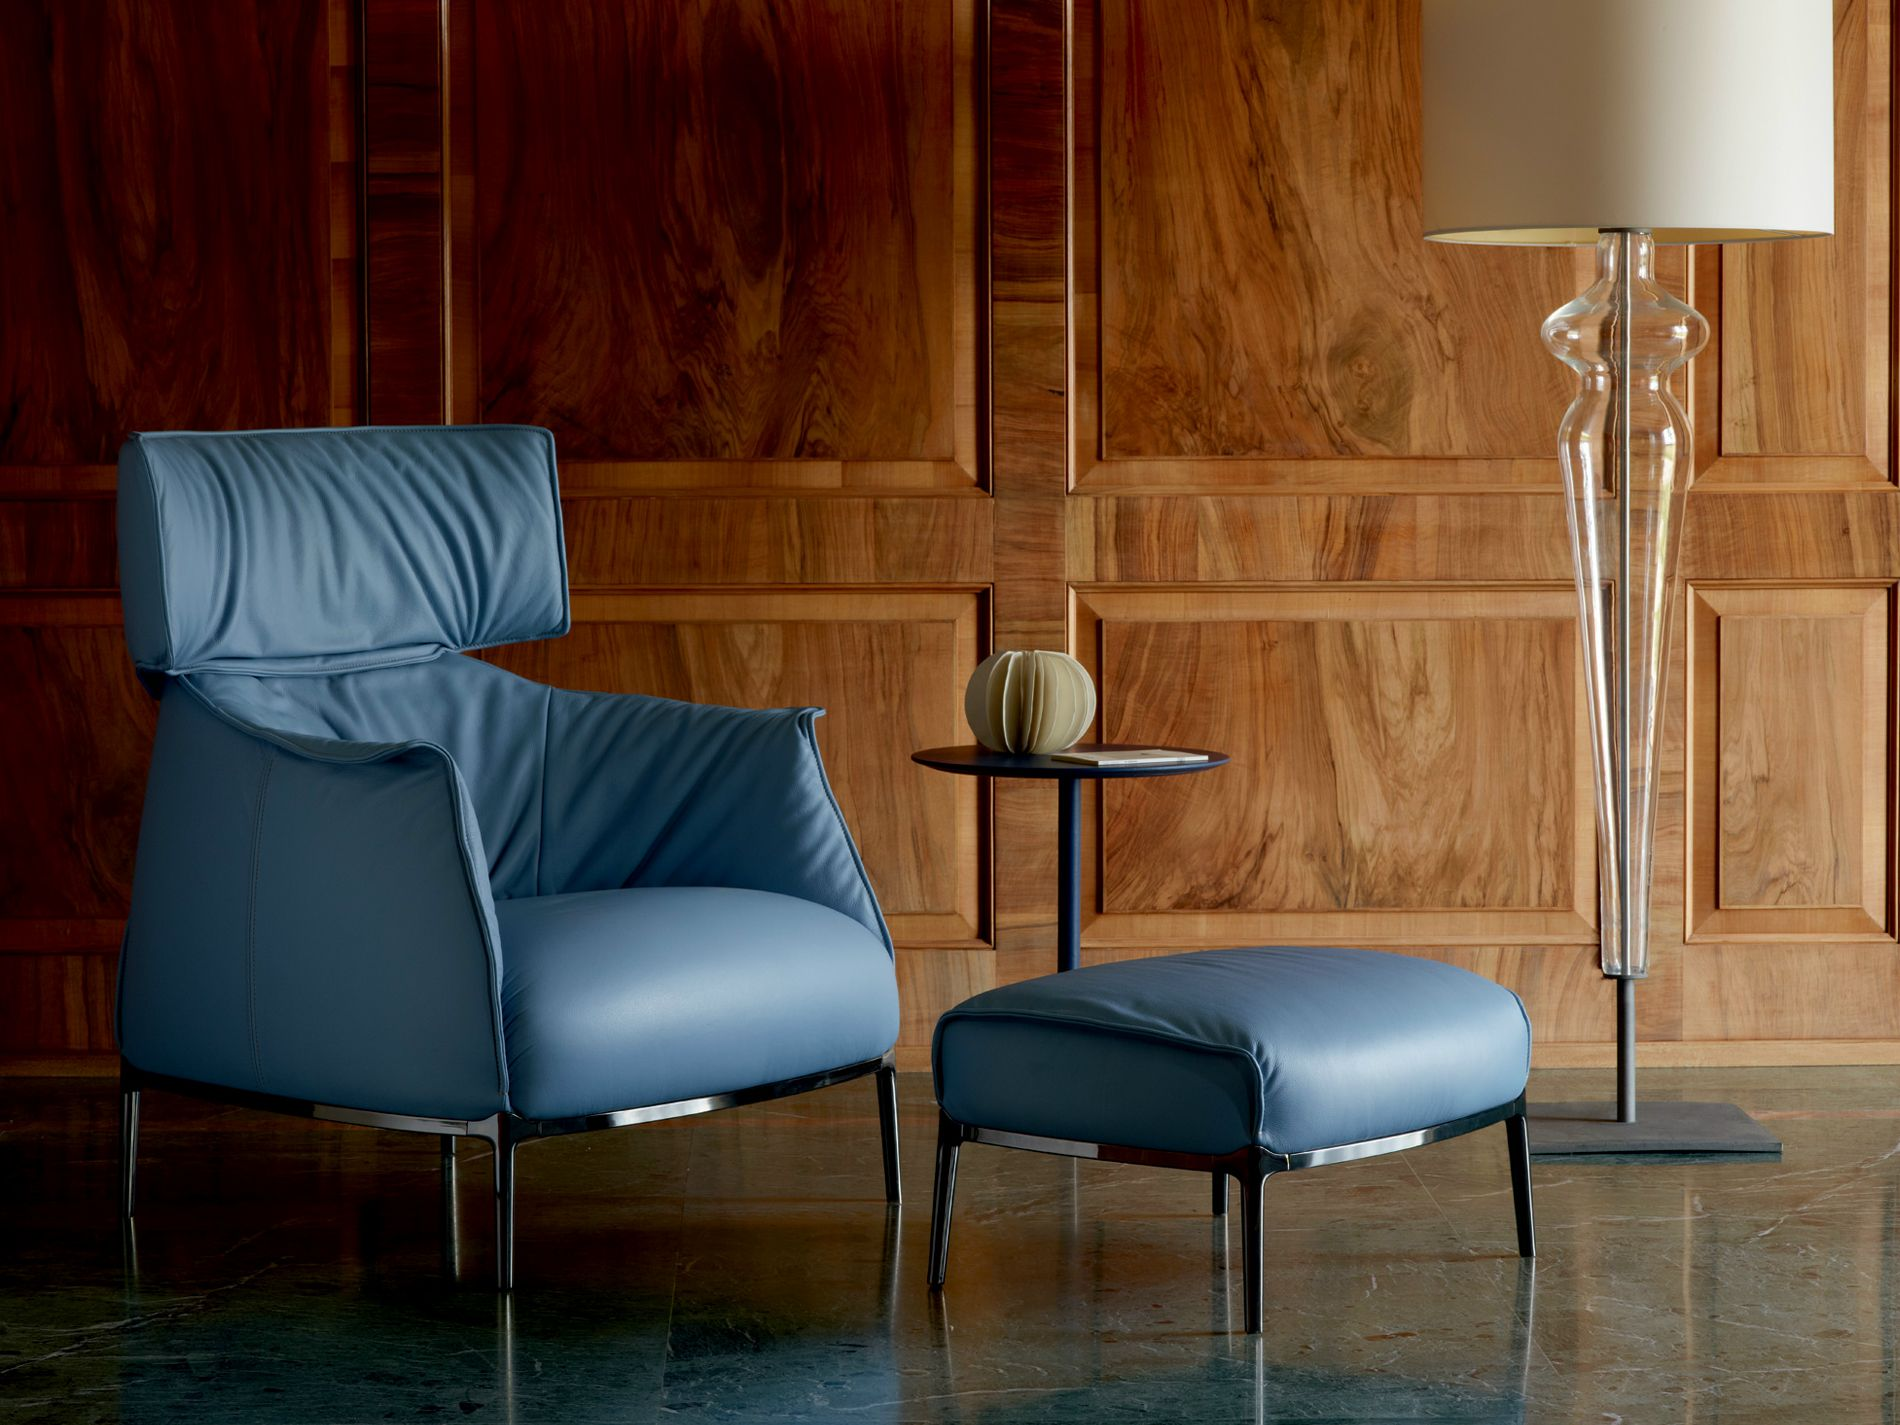 Poltrona Frau Design Bank.Archibald Armchair With Headrest By Poltrona Frau Design Jean